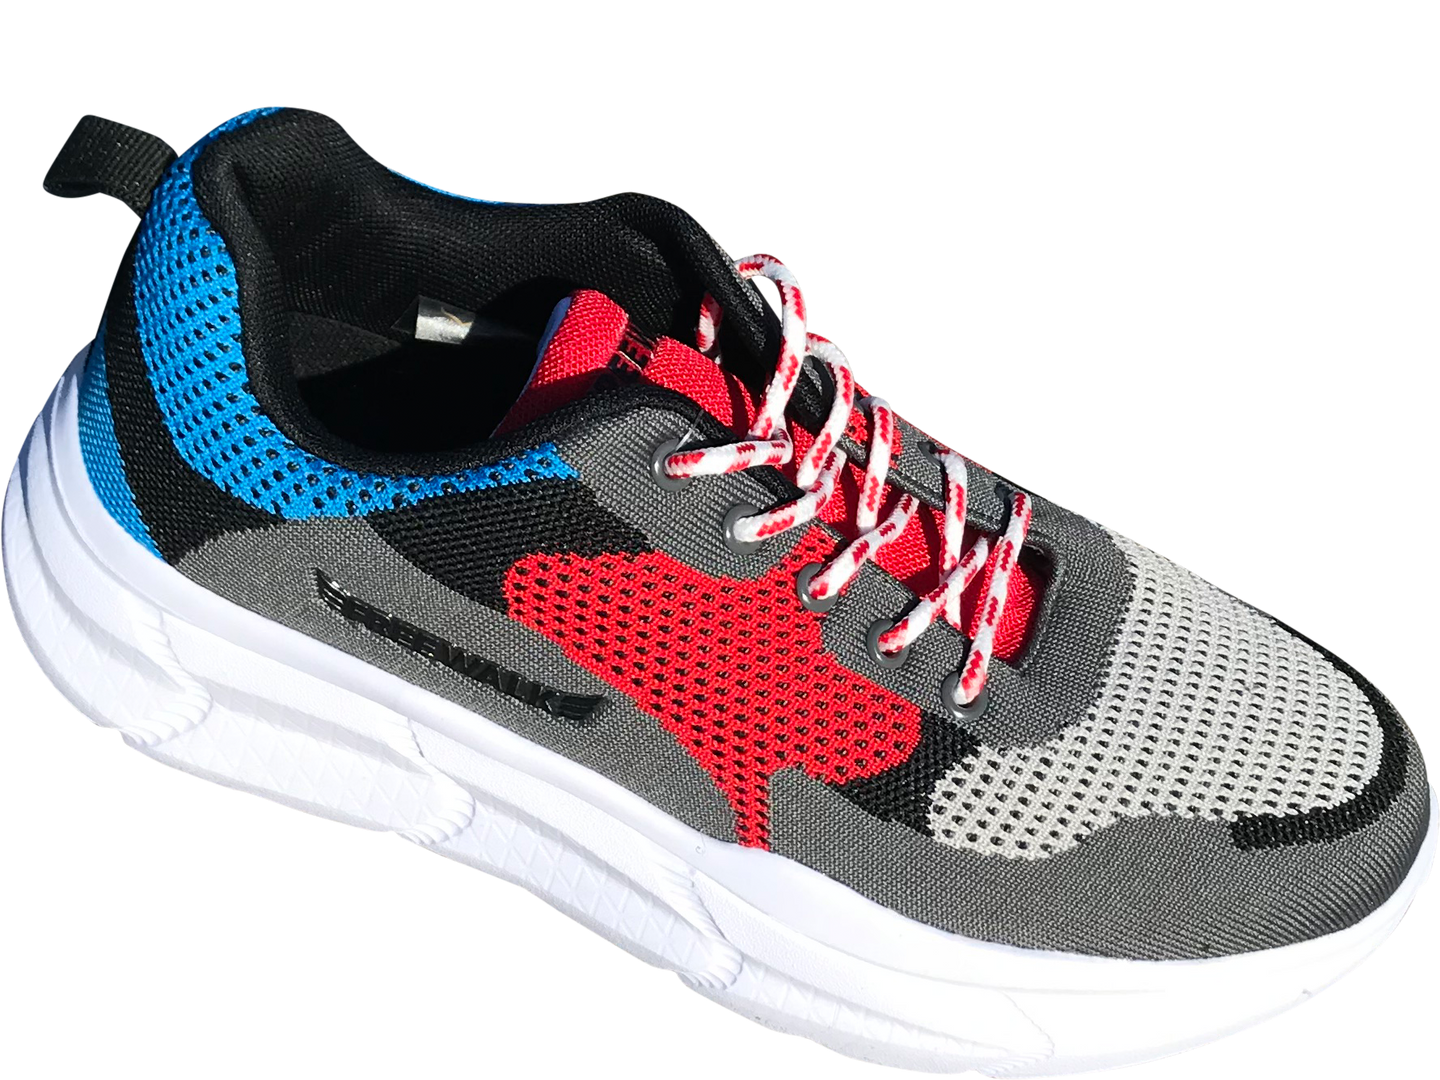 Paris chunky sneakers blue/grey/red